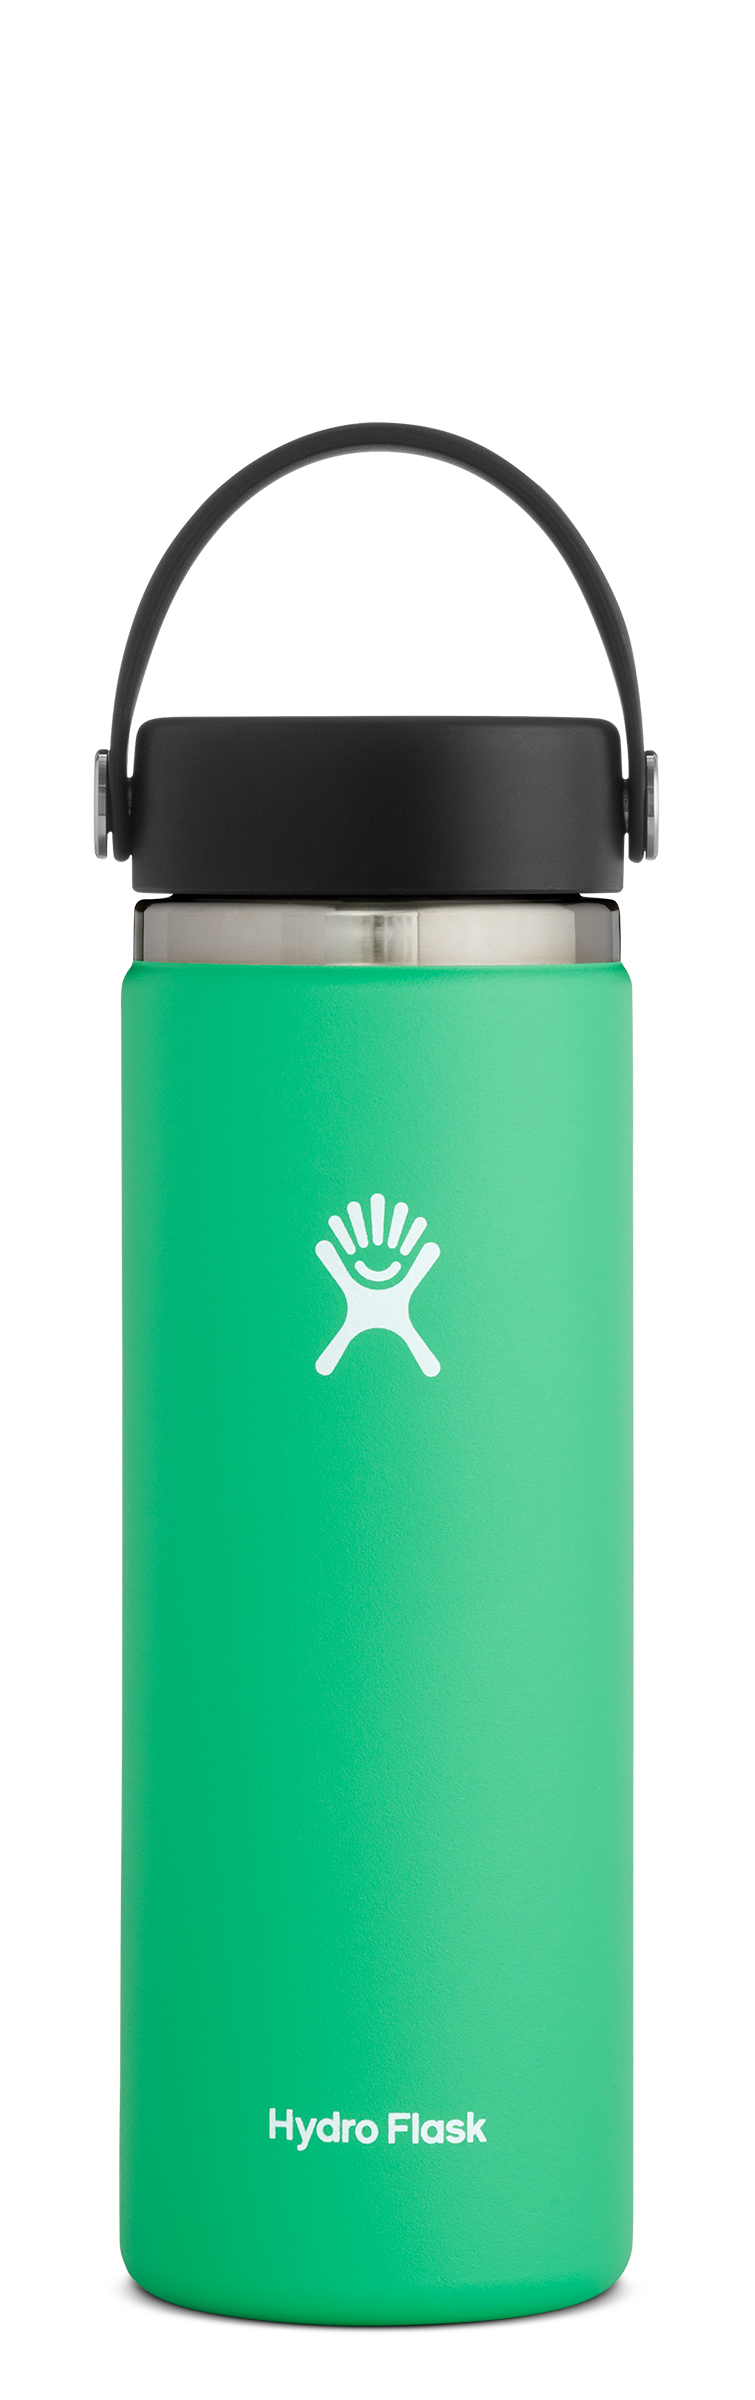 New Hydro Flask 20Oz Bottles (SKU 11118152193)